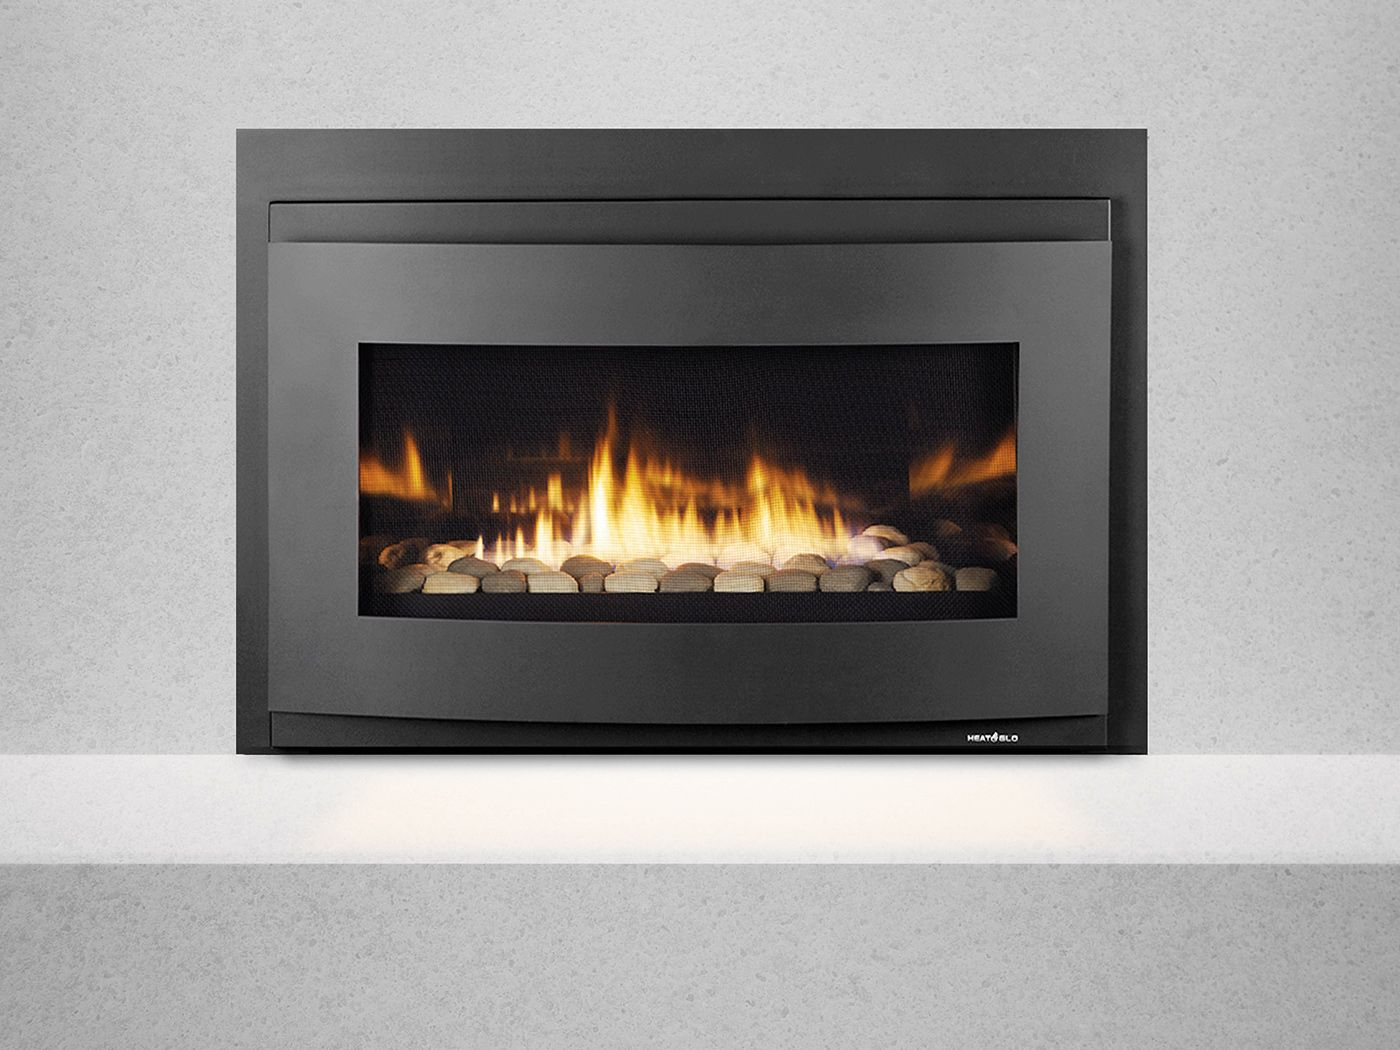 How To Update And Upgrade An Existing Fireplace Gas Fireplace Insert Gas Fireplace Fireplace Inserts